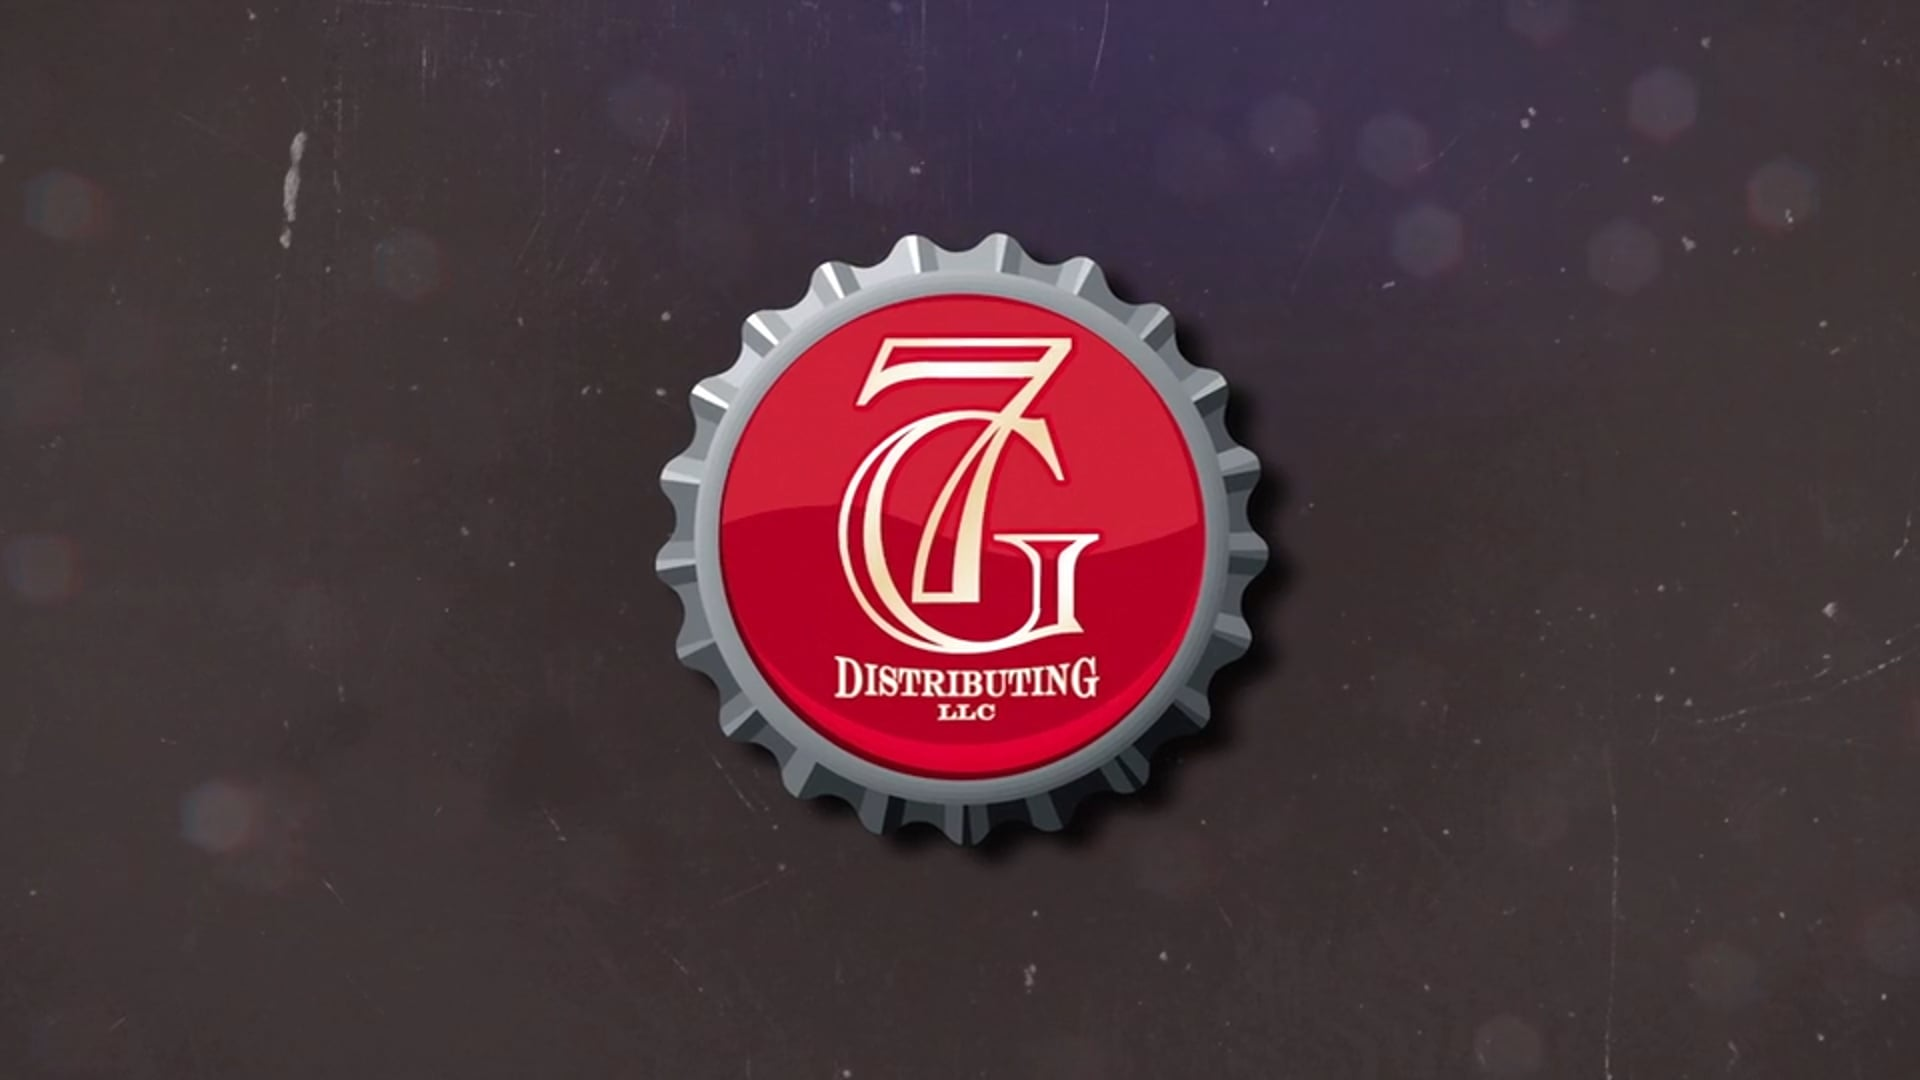 The Heritage of 7G Distributing